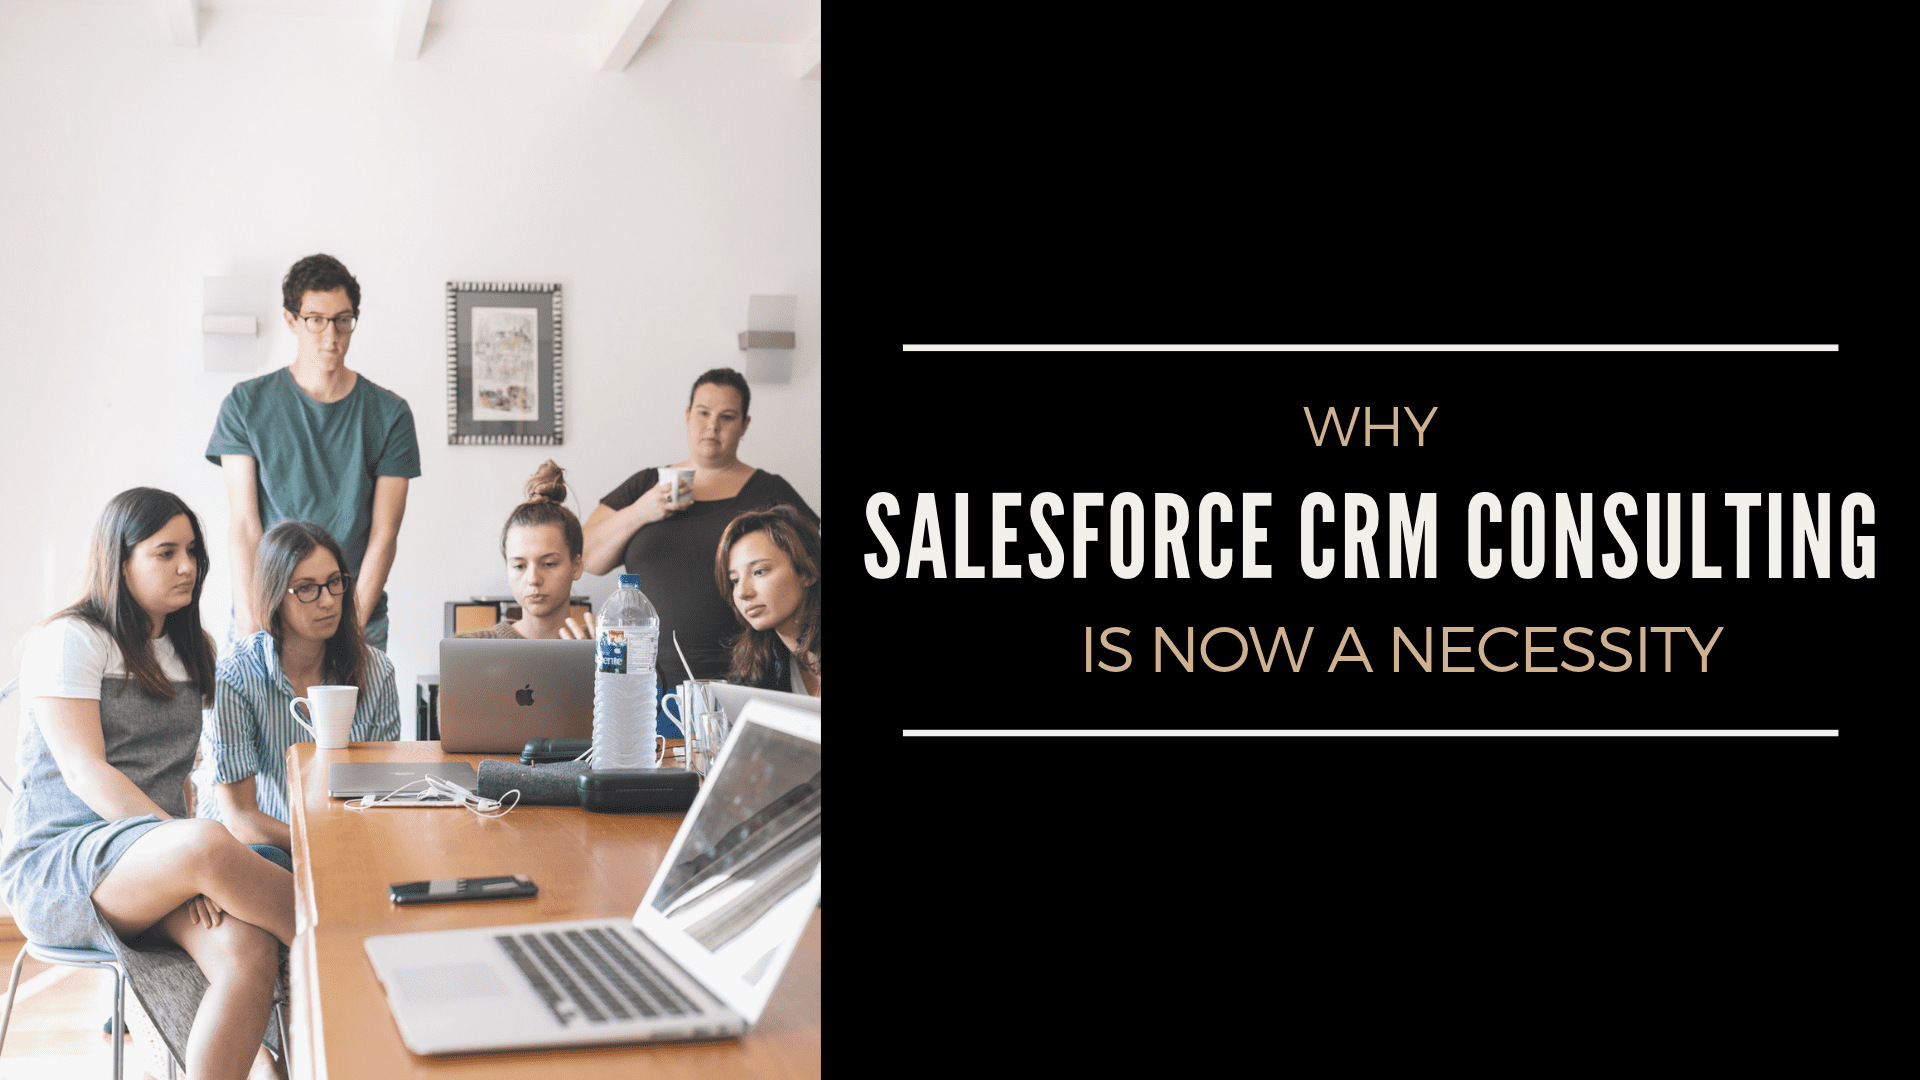 why Salesforce CRM is now a necessity